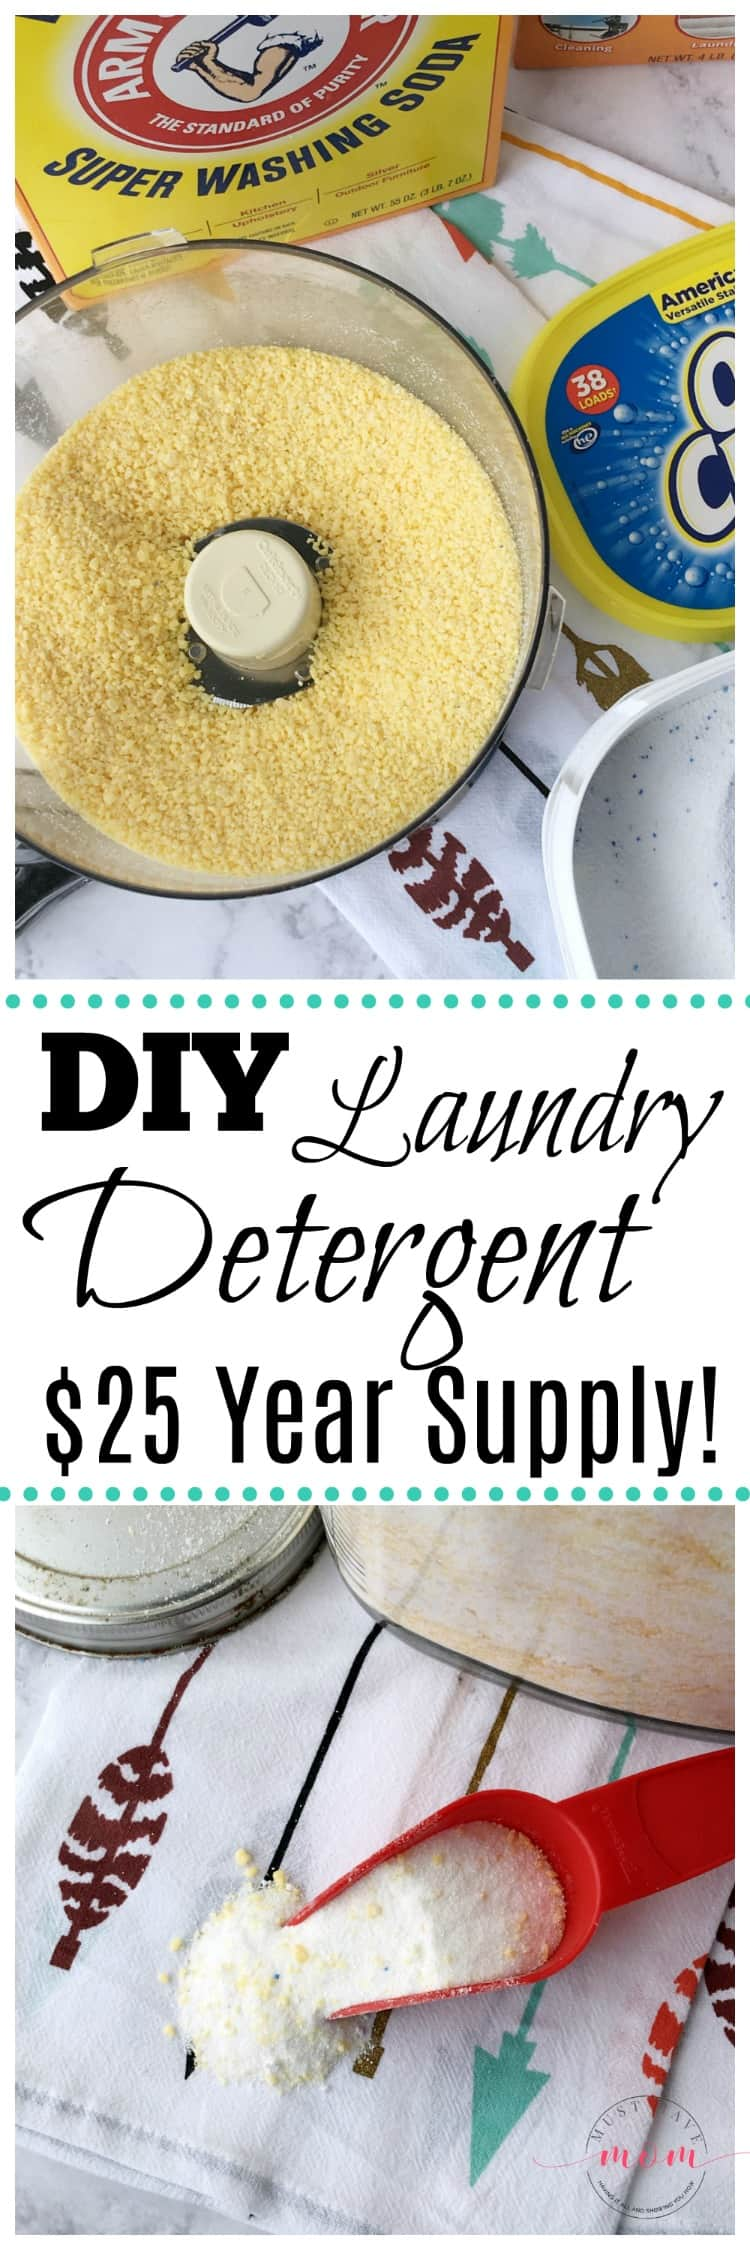 Make your own homemade laundry detergent recipe for just $25 for a year supply!